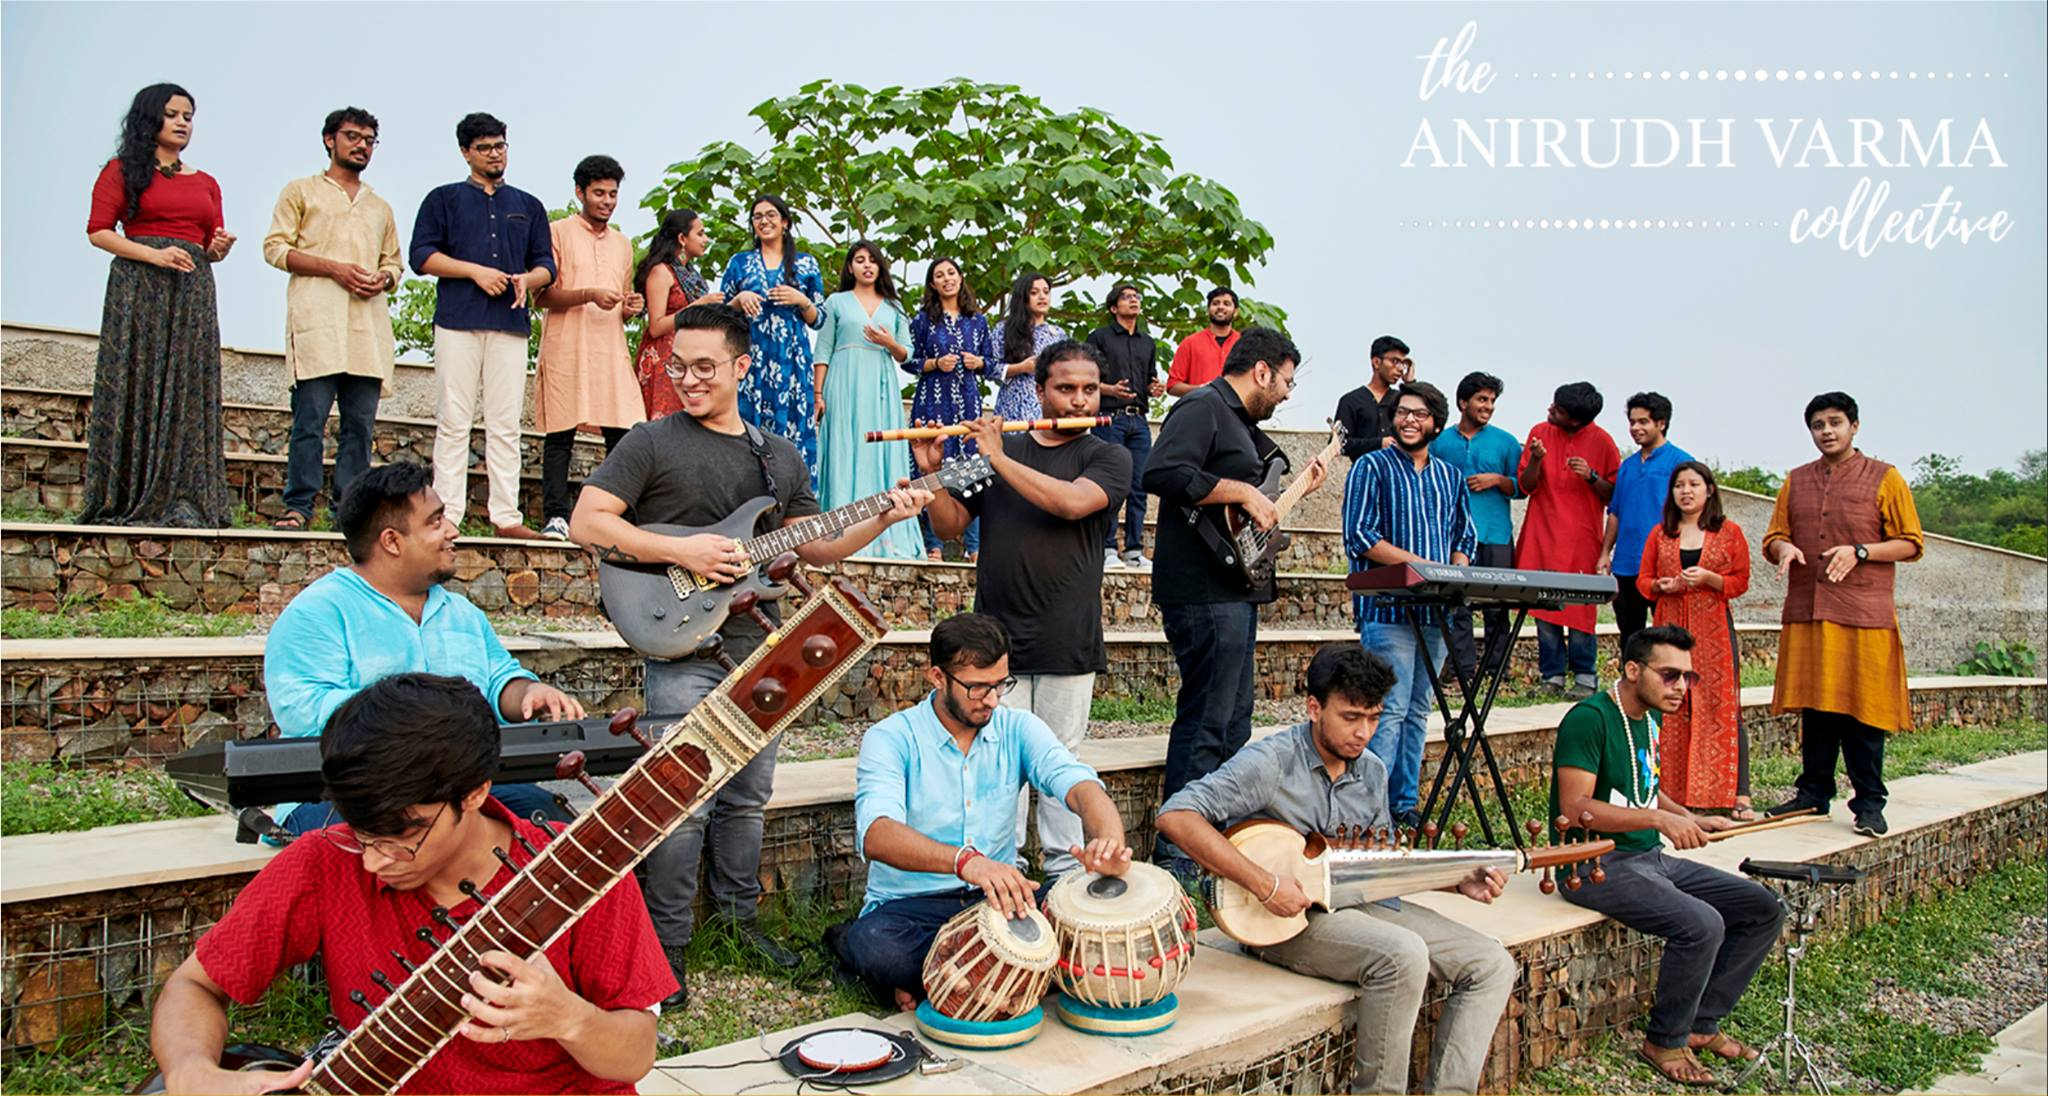 Classical Re-imagined by The Anirudh Varma Collective